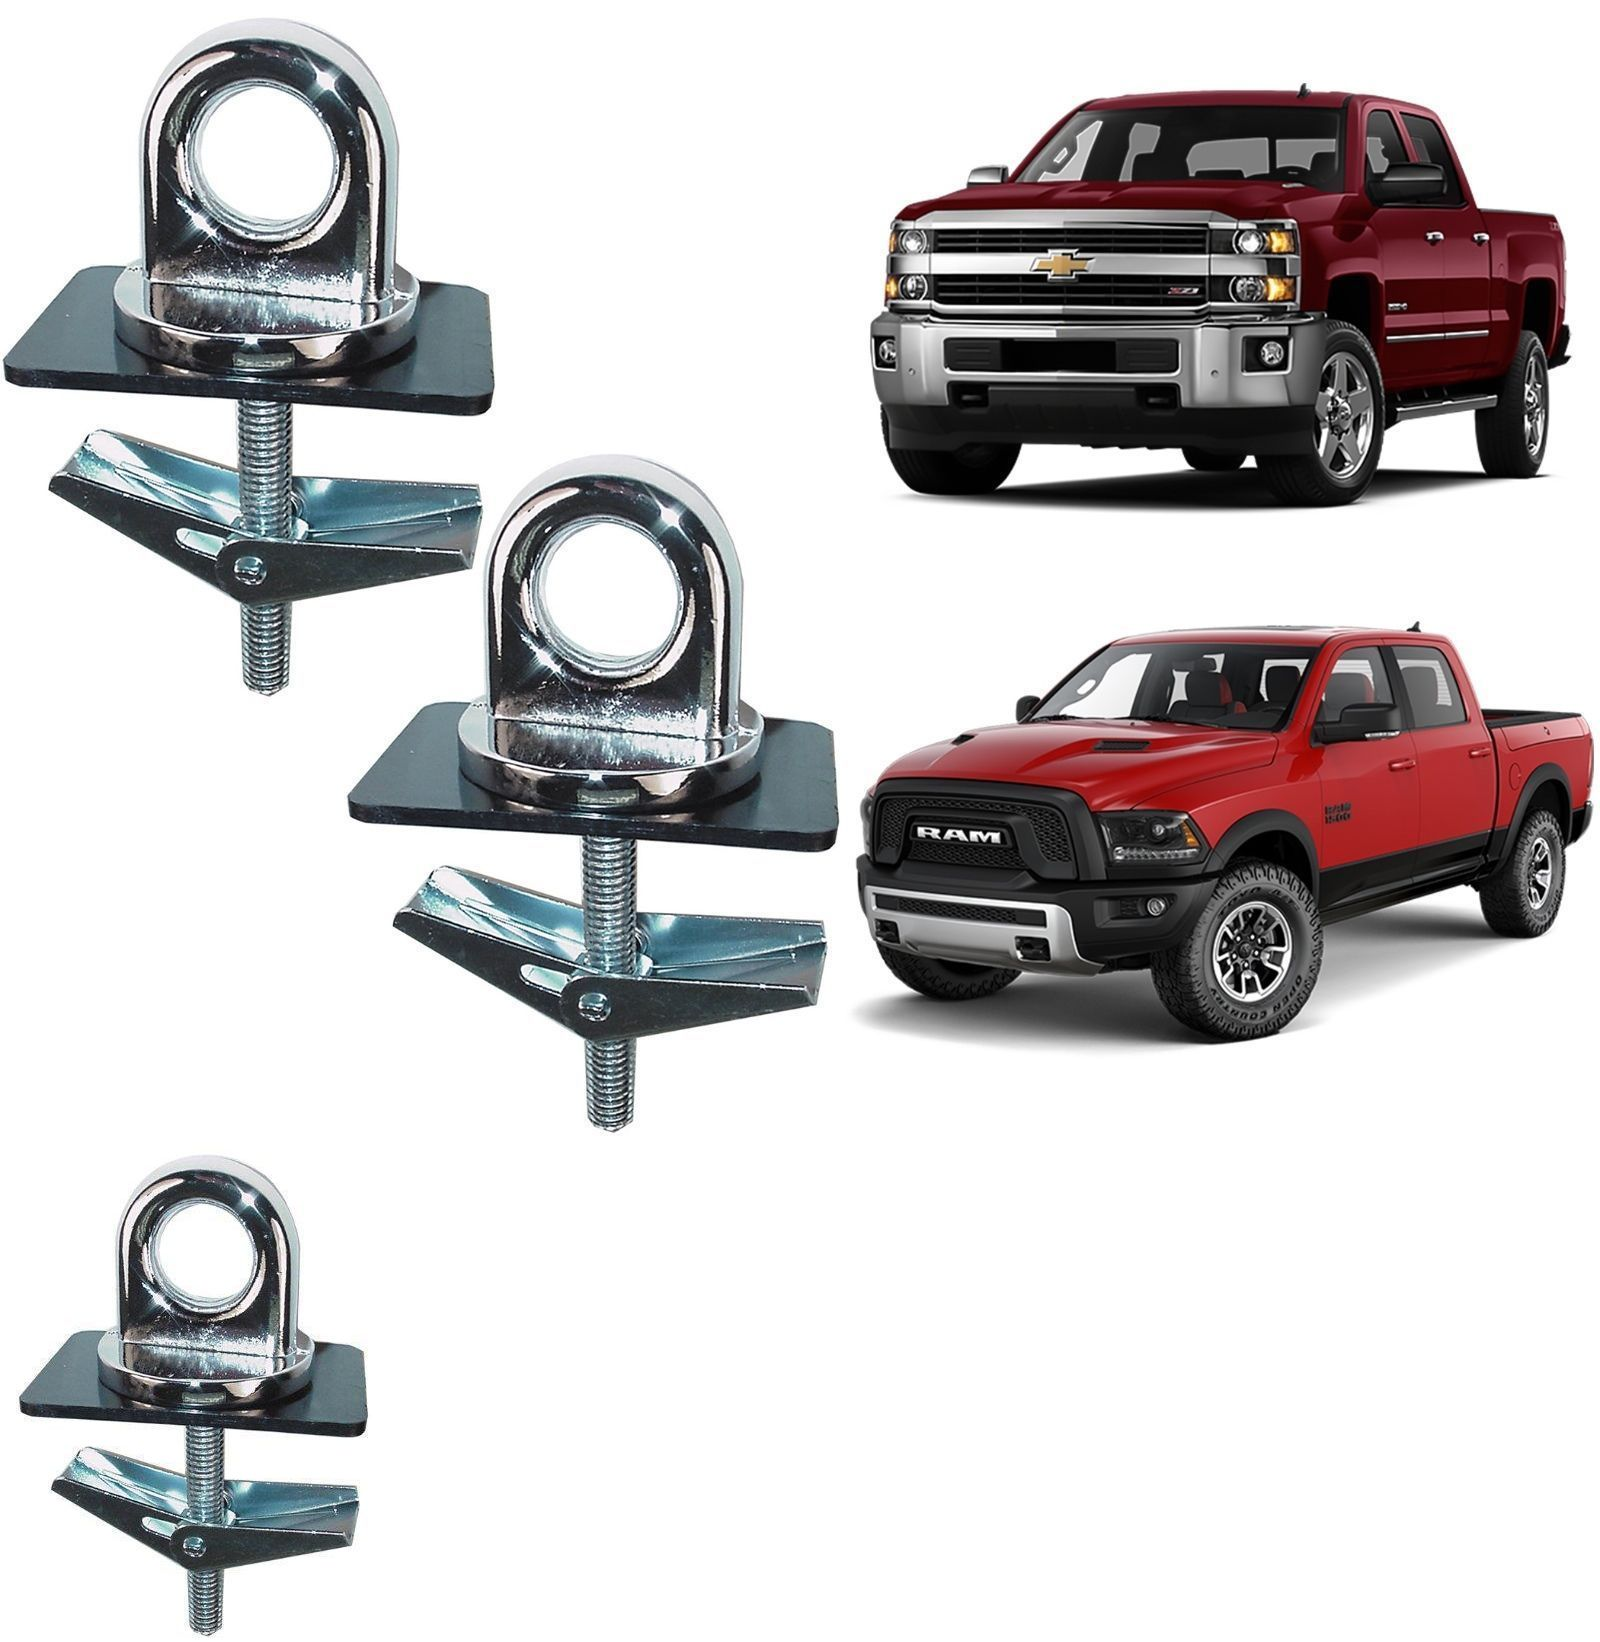 Details about 2 Pieces Universal Truck Bed Anchor Points